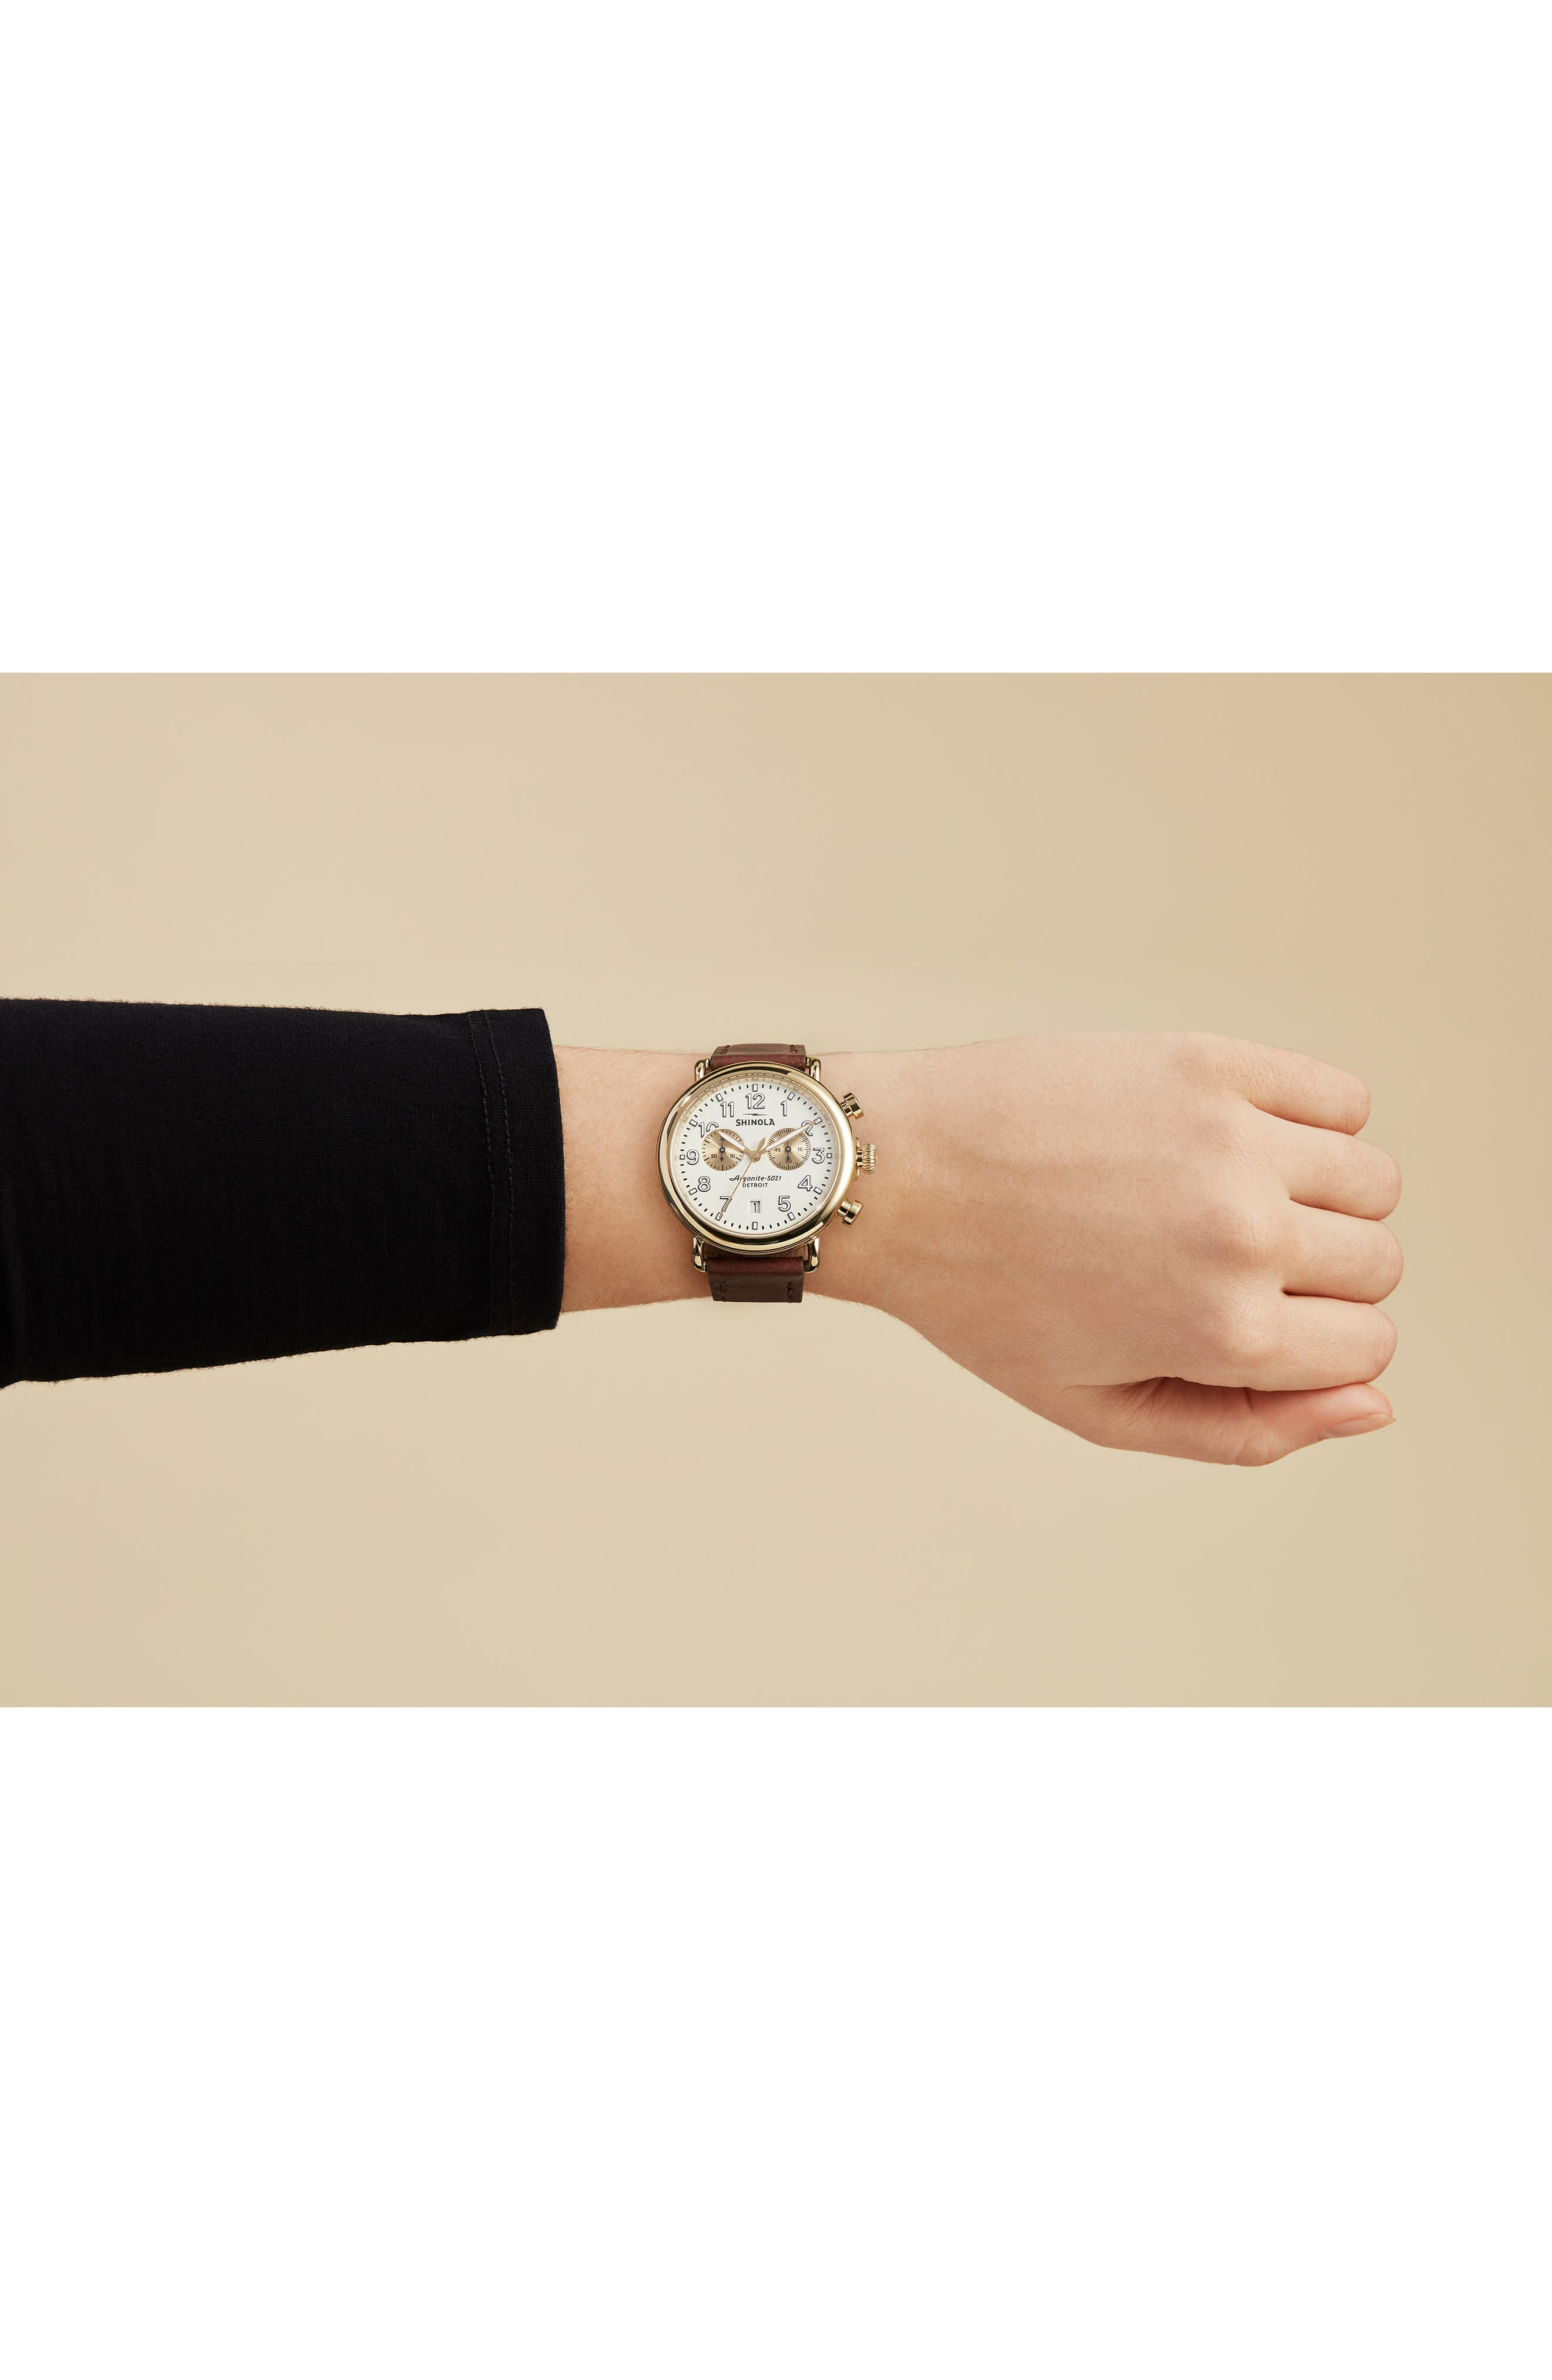 SHINOLA, 'The Runwell Chrono' Leather Strap Watch, 41mm, Alternate thumbnail 2, color, BROWN CATTAIL/ IVORY/ GOLD